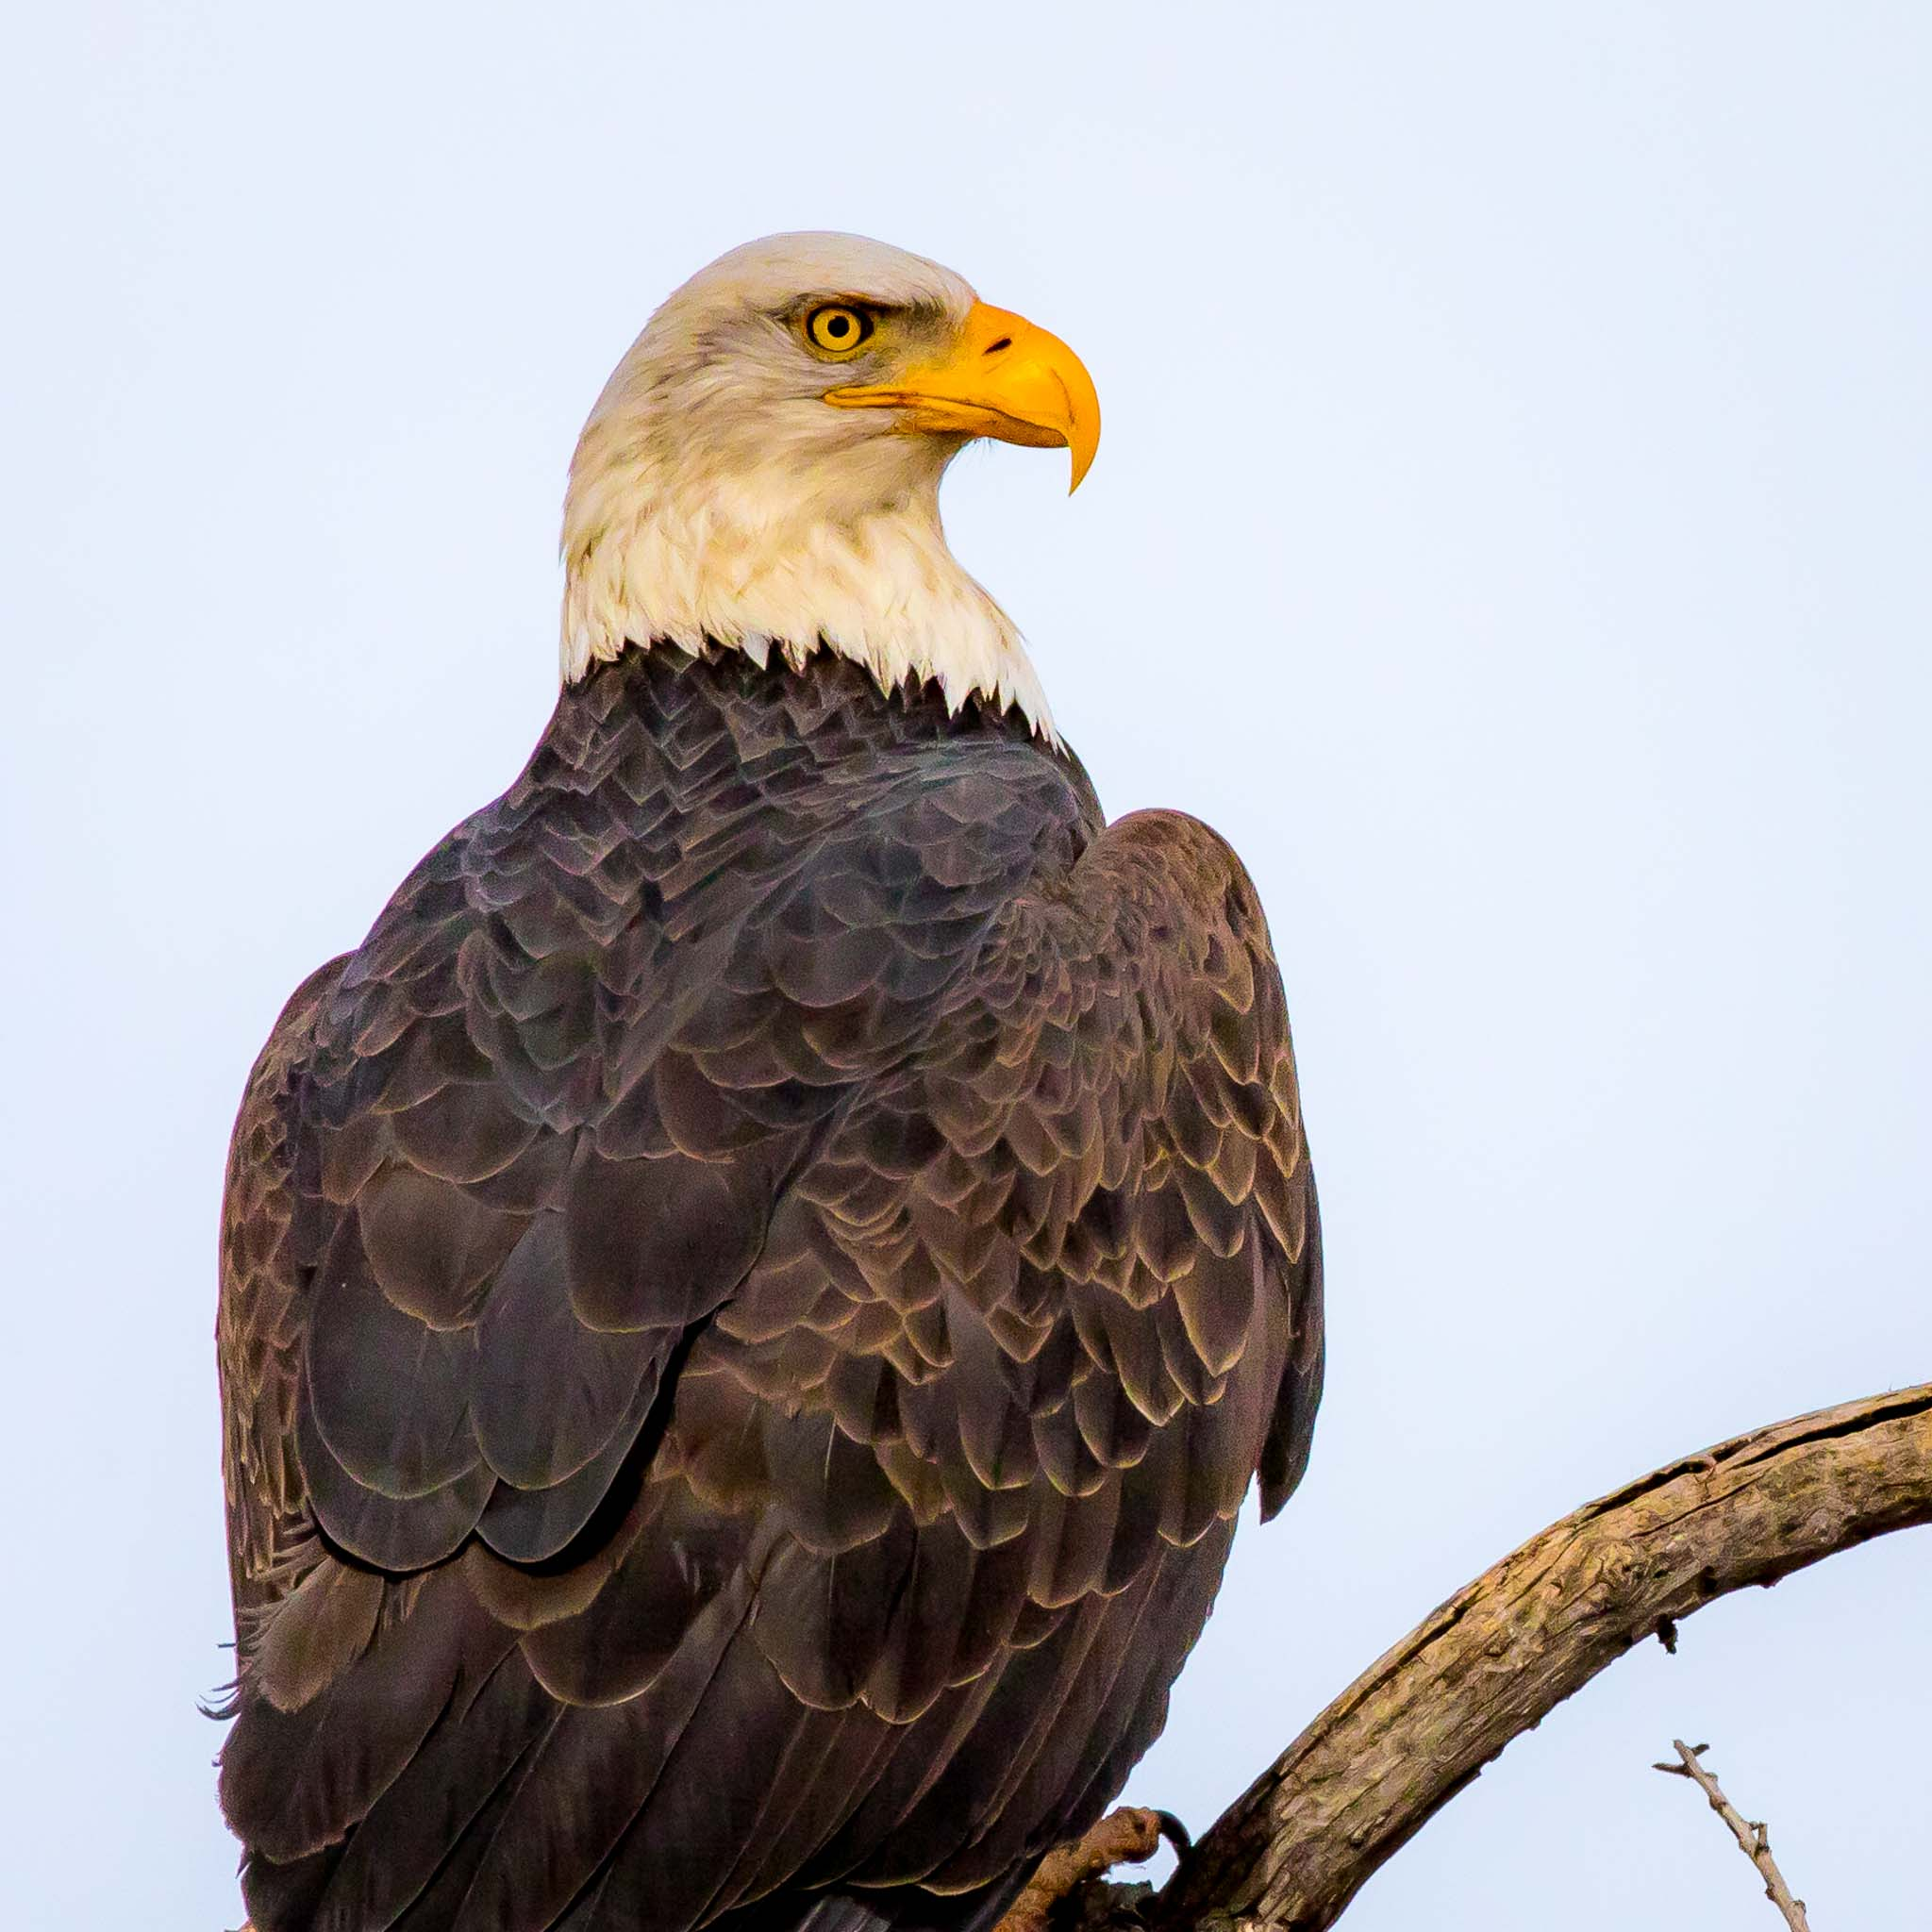 Bald Eagle perched on a limb, Bosque del Apache National Wildlife Refuge, San Antonio NM, December 31, 2017